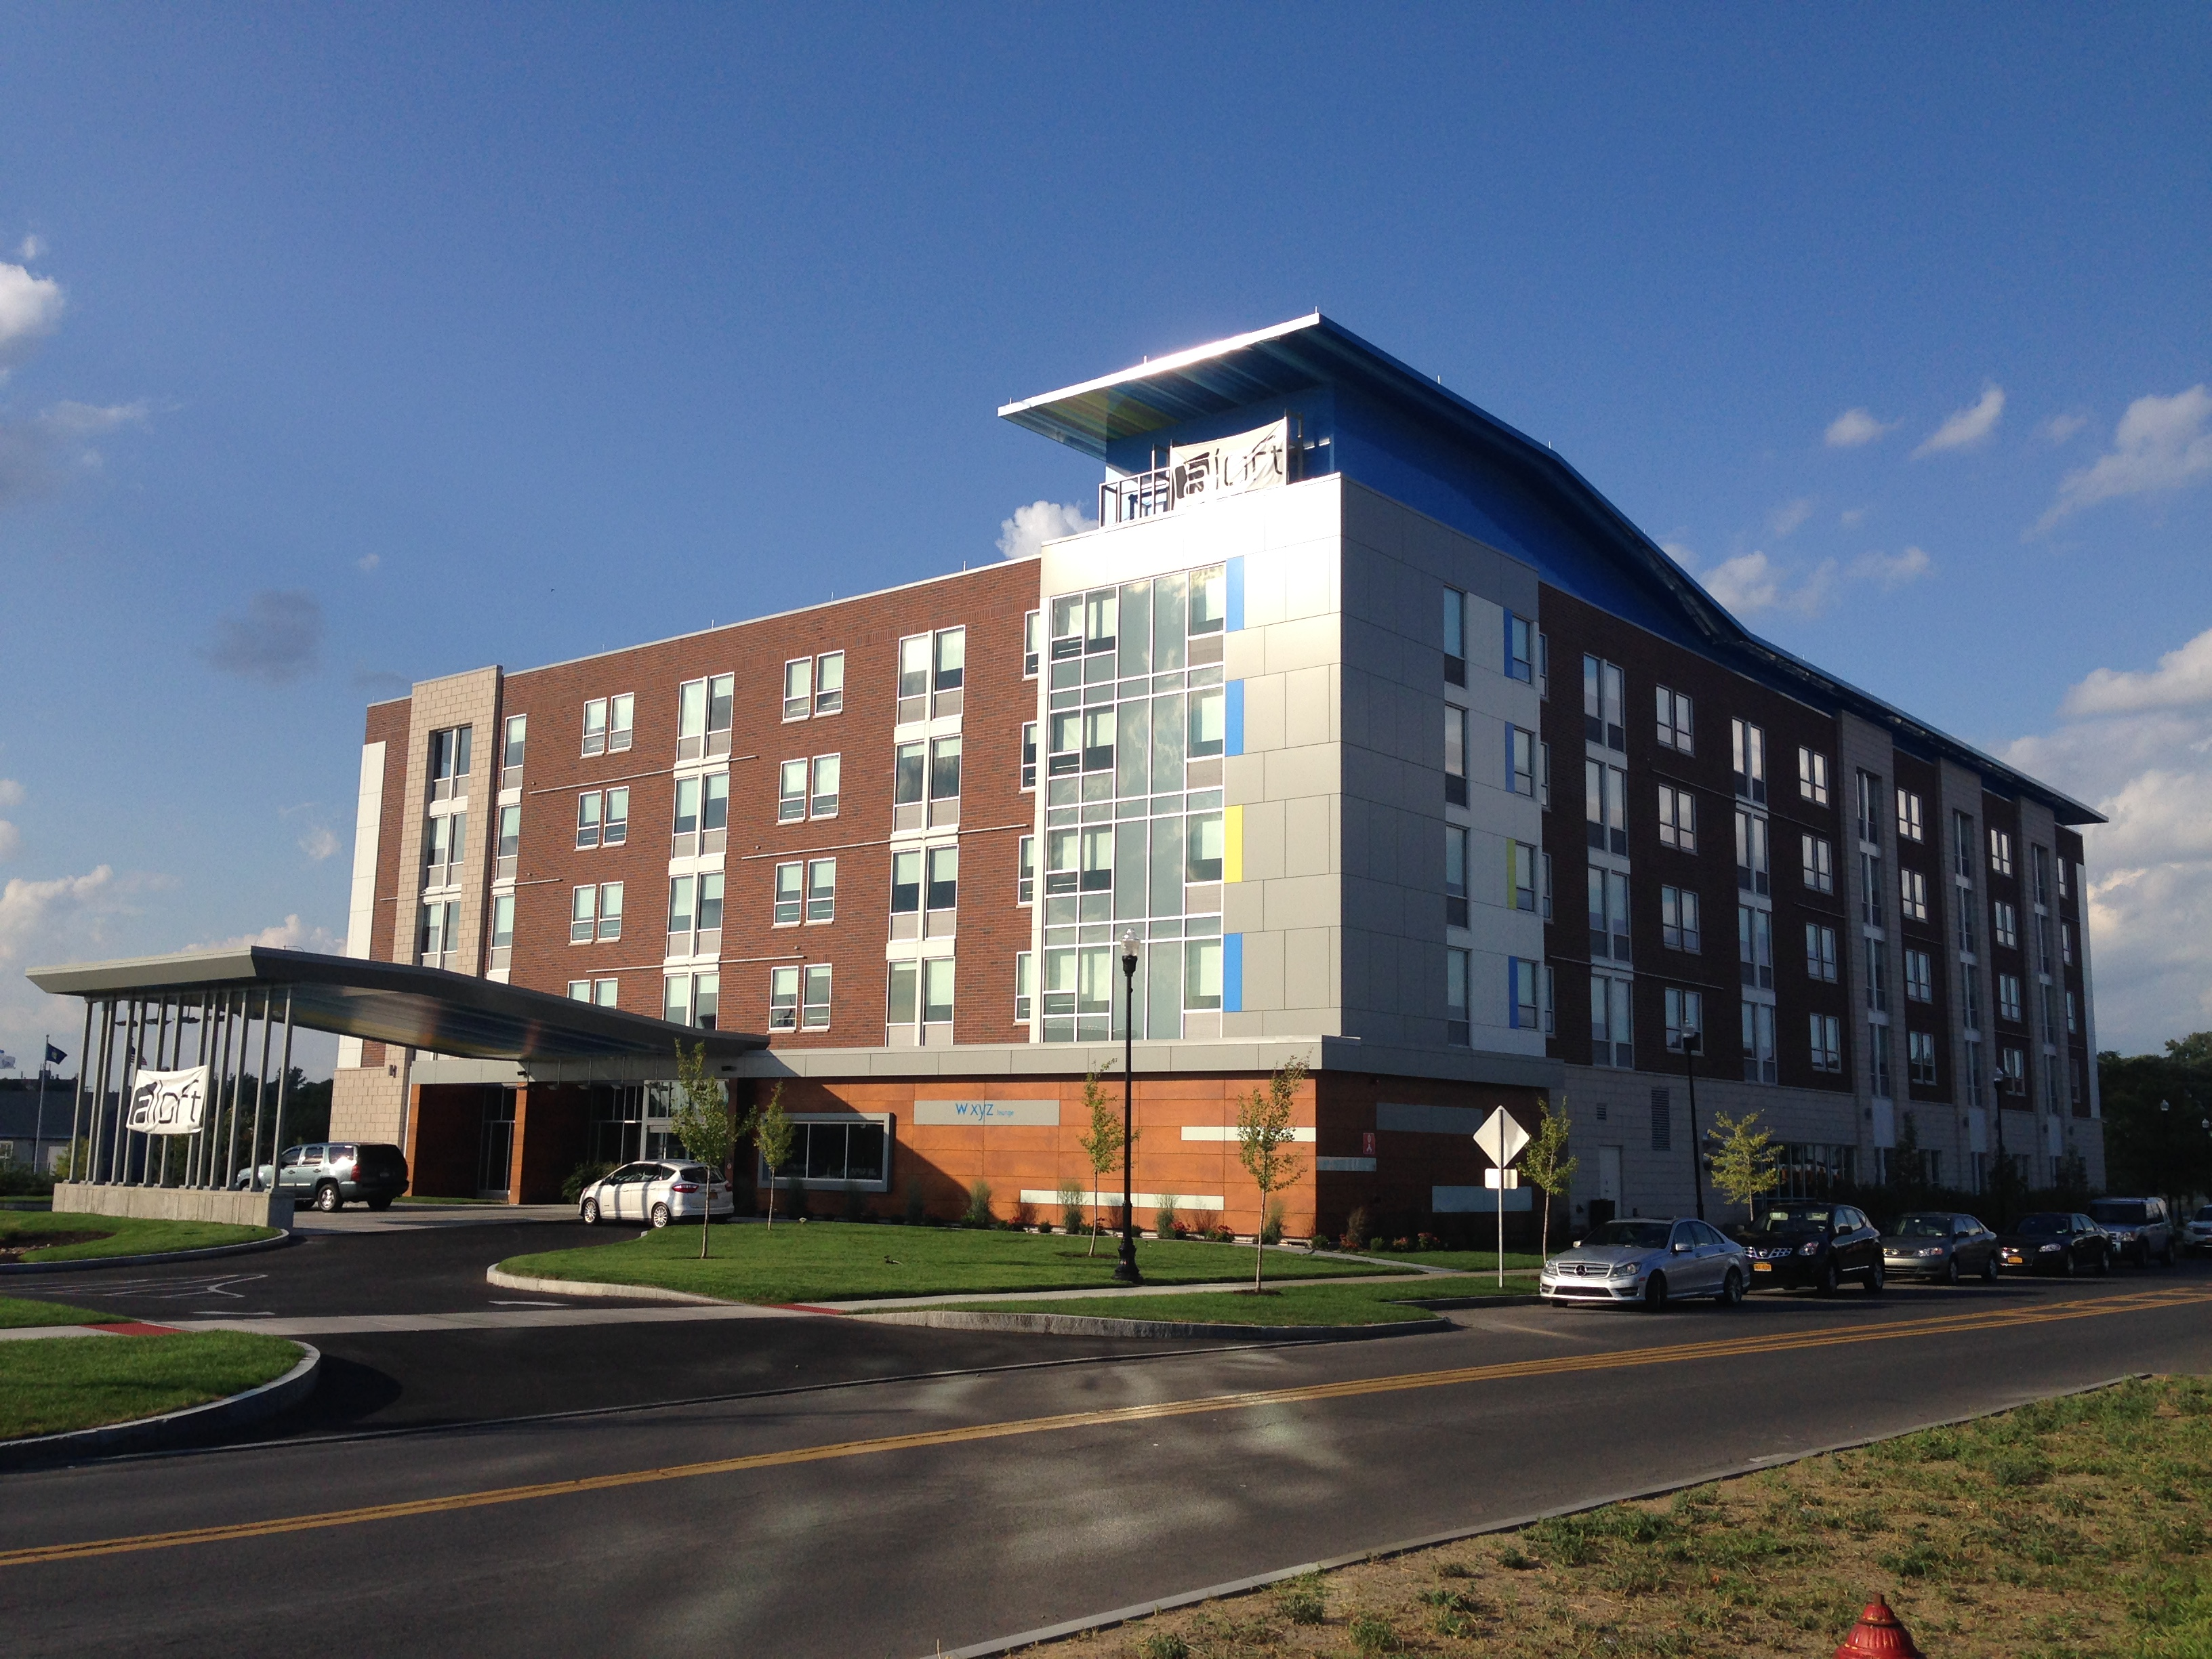 John P. Stopen Aloft Hotel Inner Harbor Syracuse Project completed exterior